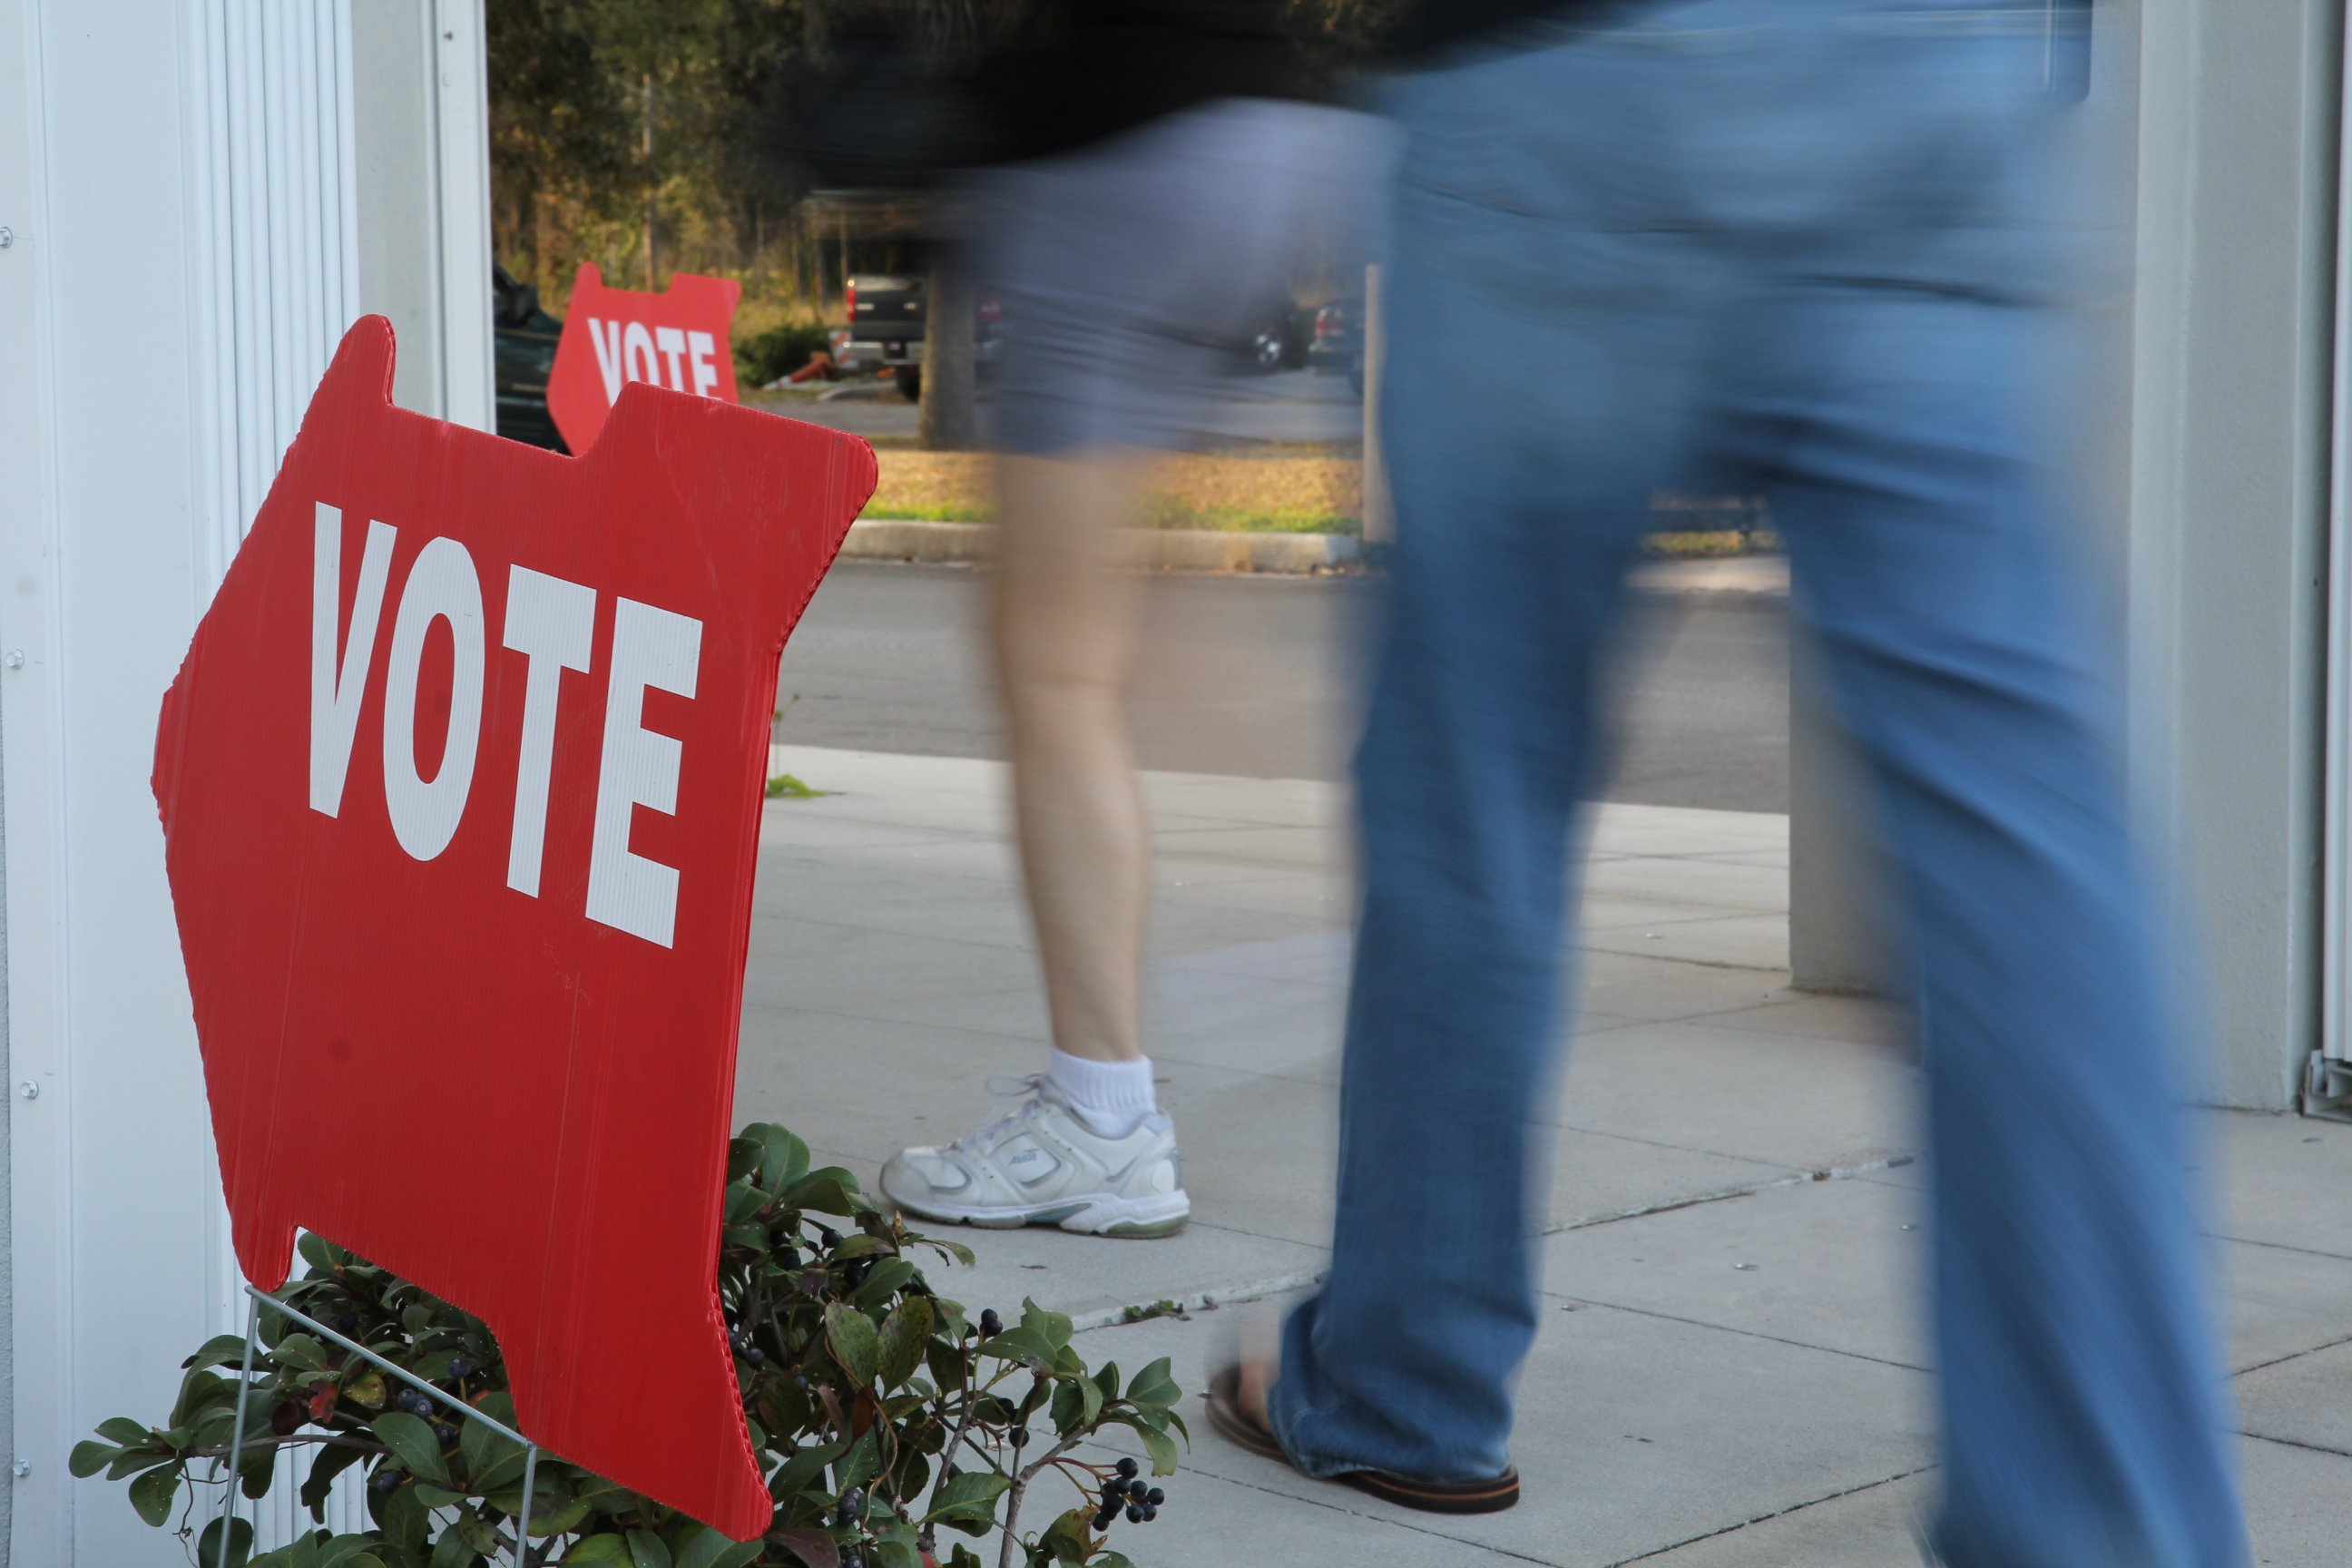 Voters in Tampa Go to the Polls